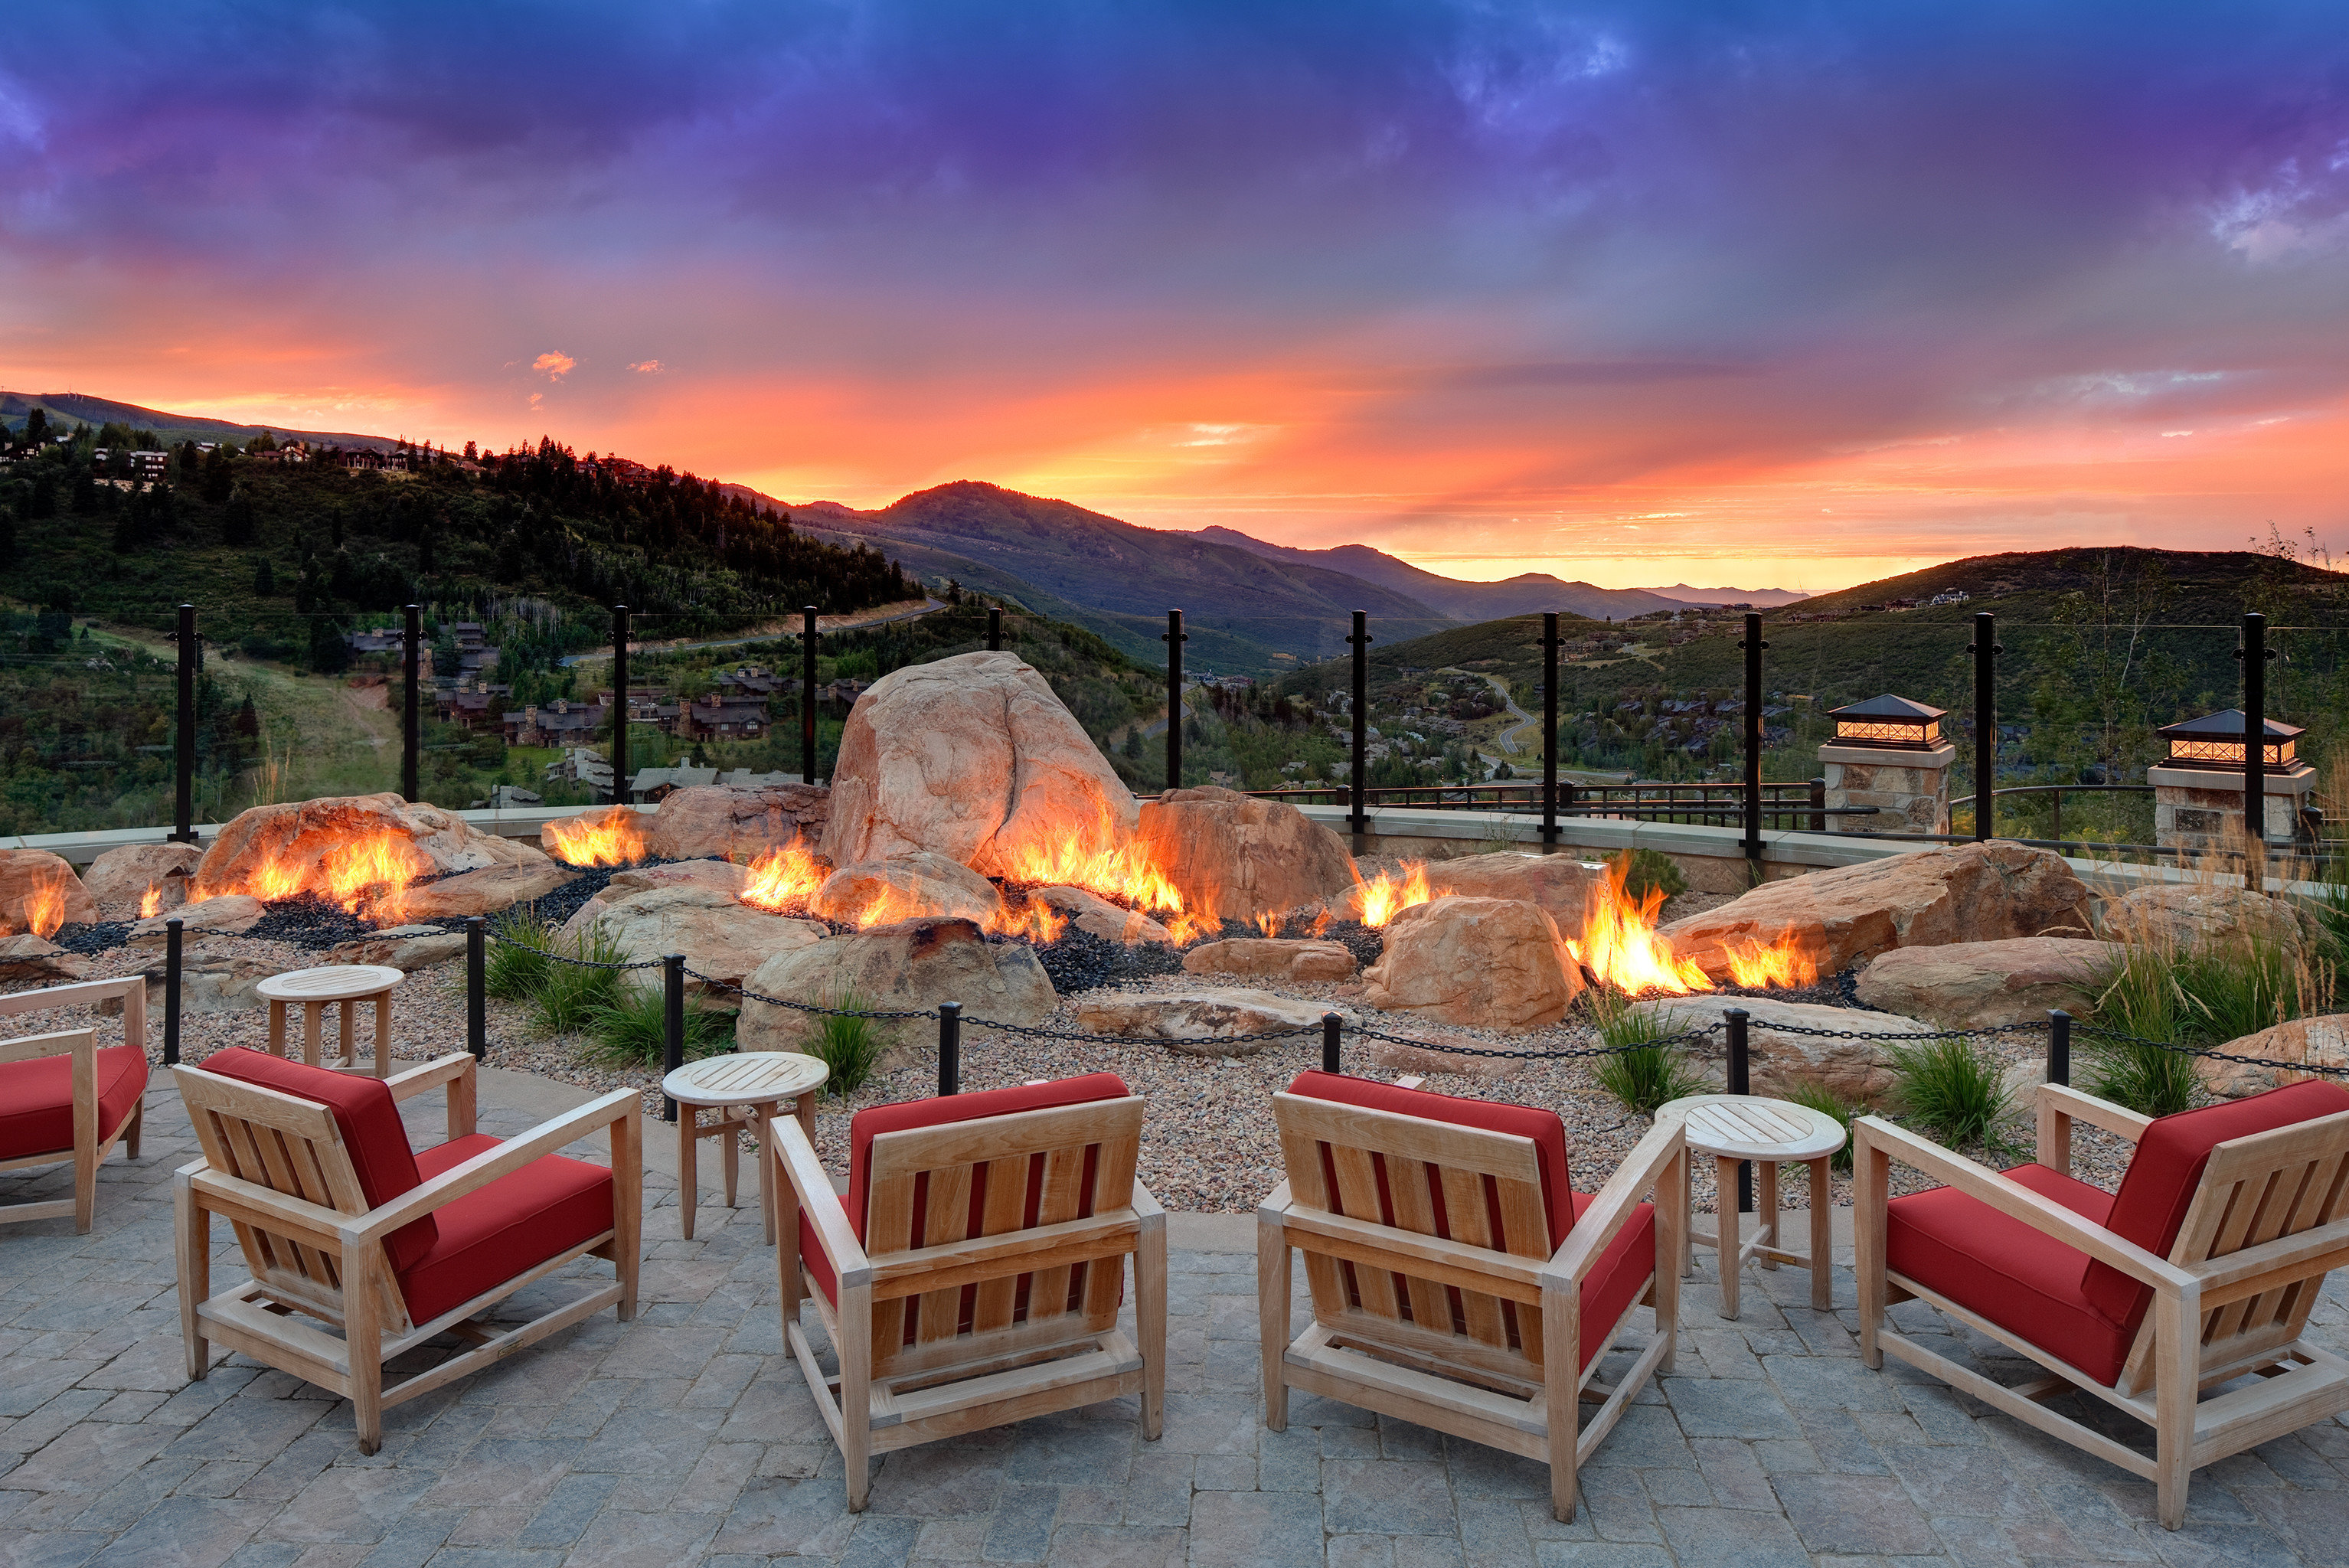 Firepit Fireplace Hip Living Lounge Luxury Modern Trip Ideas sky outdoor chair mountain estate set outdoor structure furniture